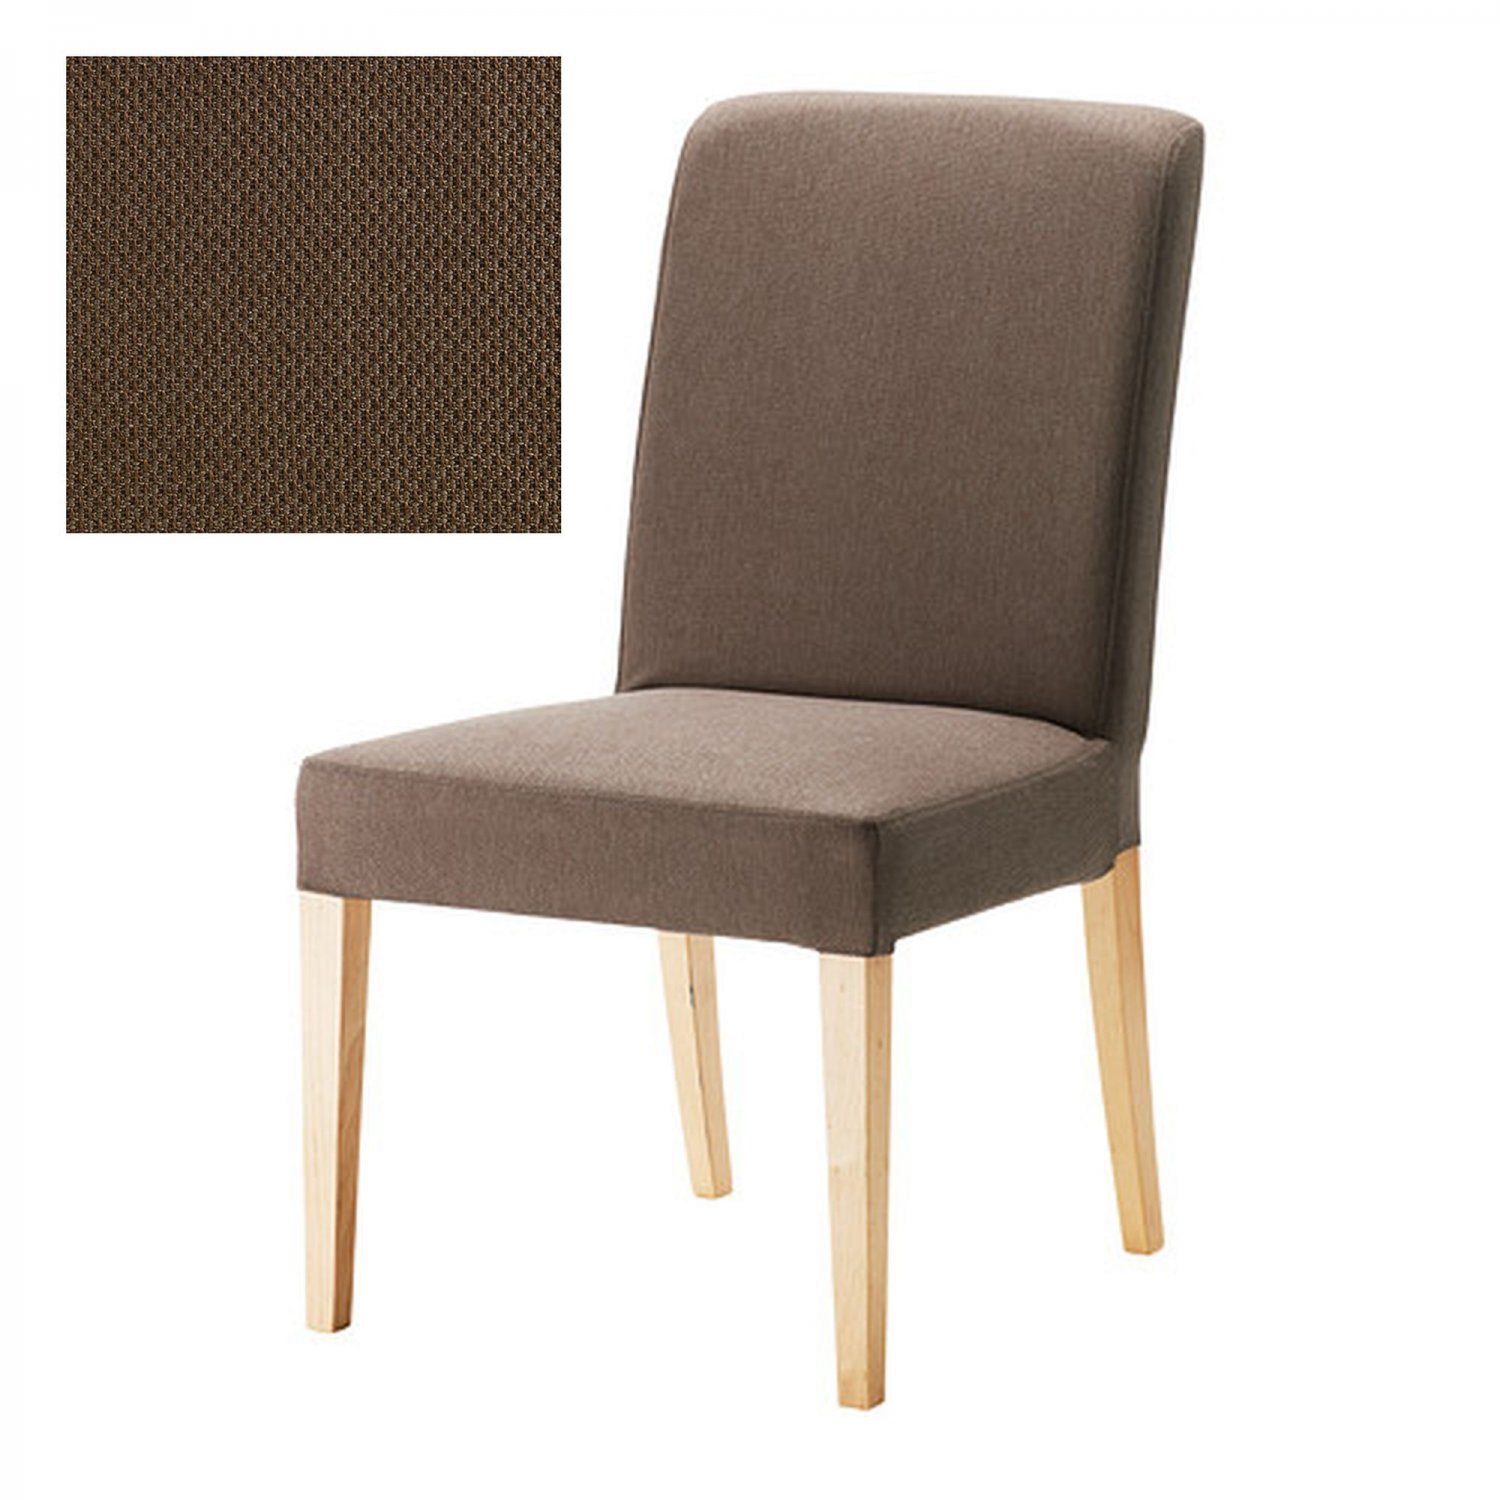 ikea henriksdal chair slipcover cover 21 54cm dansbo medium brown. Black Bedroom Furniture Sets. Home Design Ideas